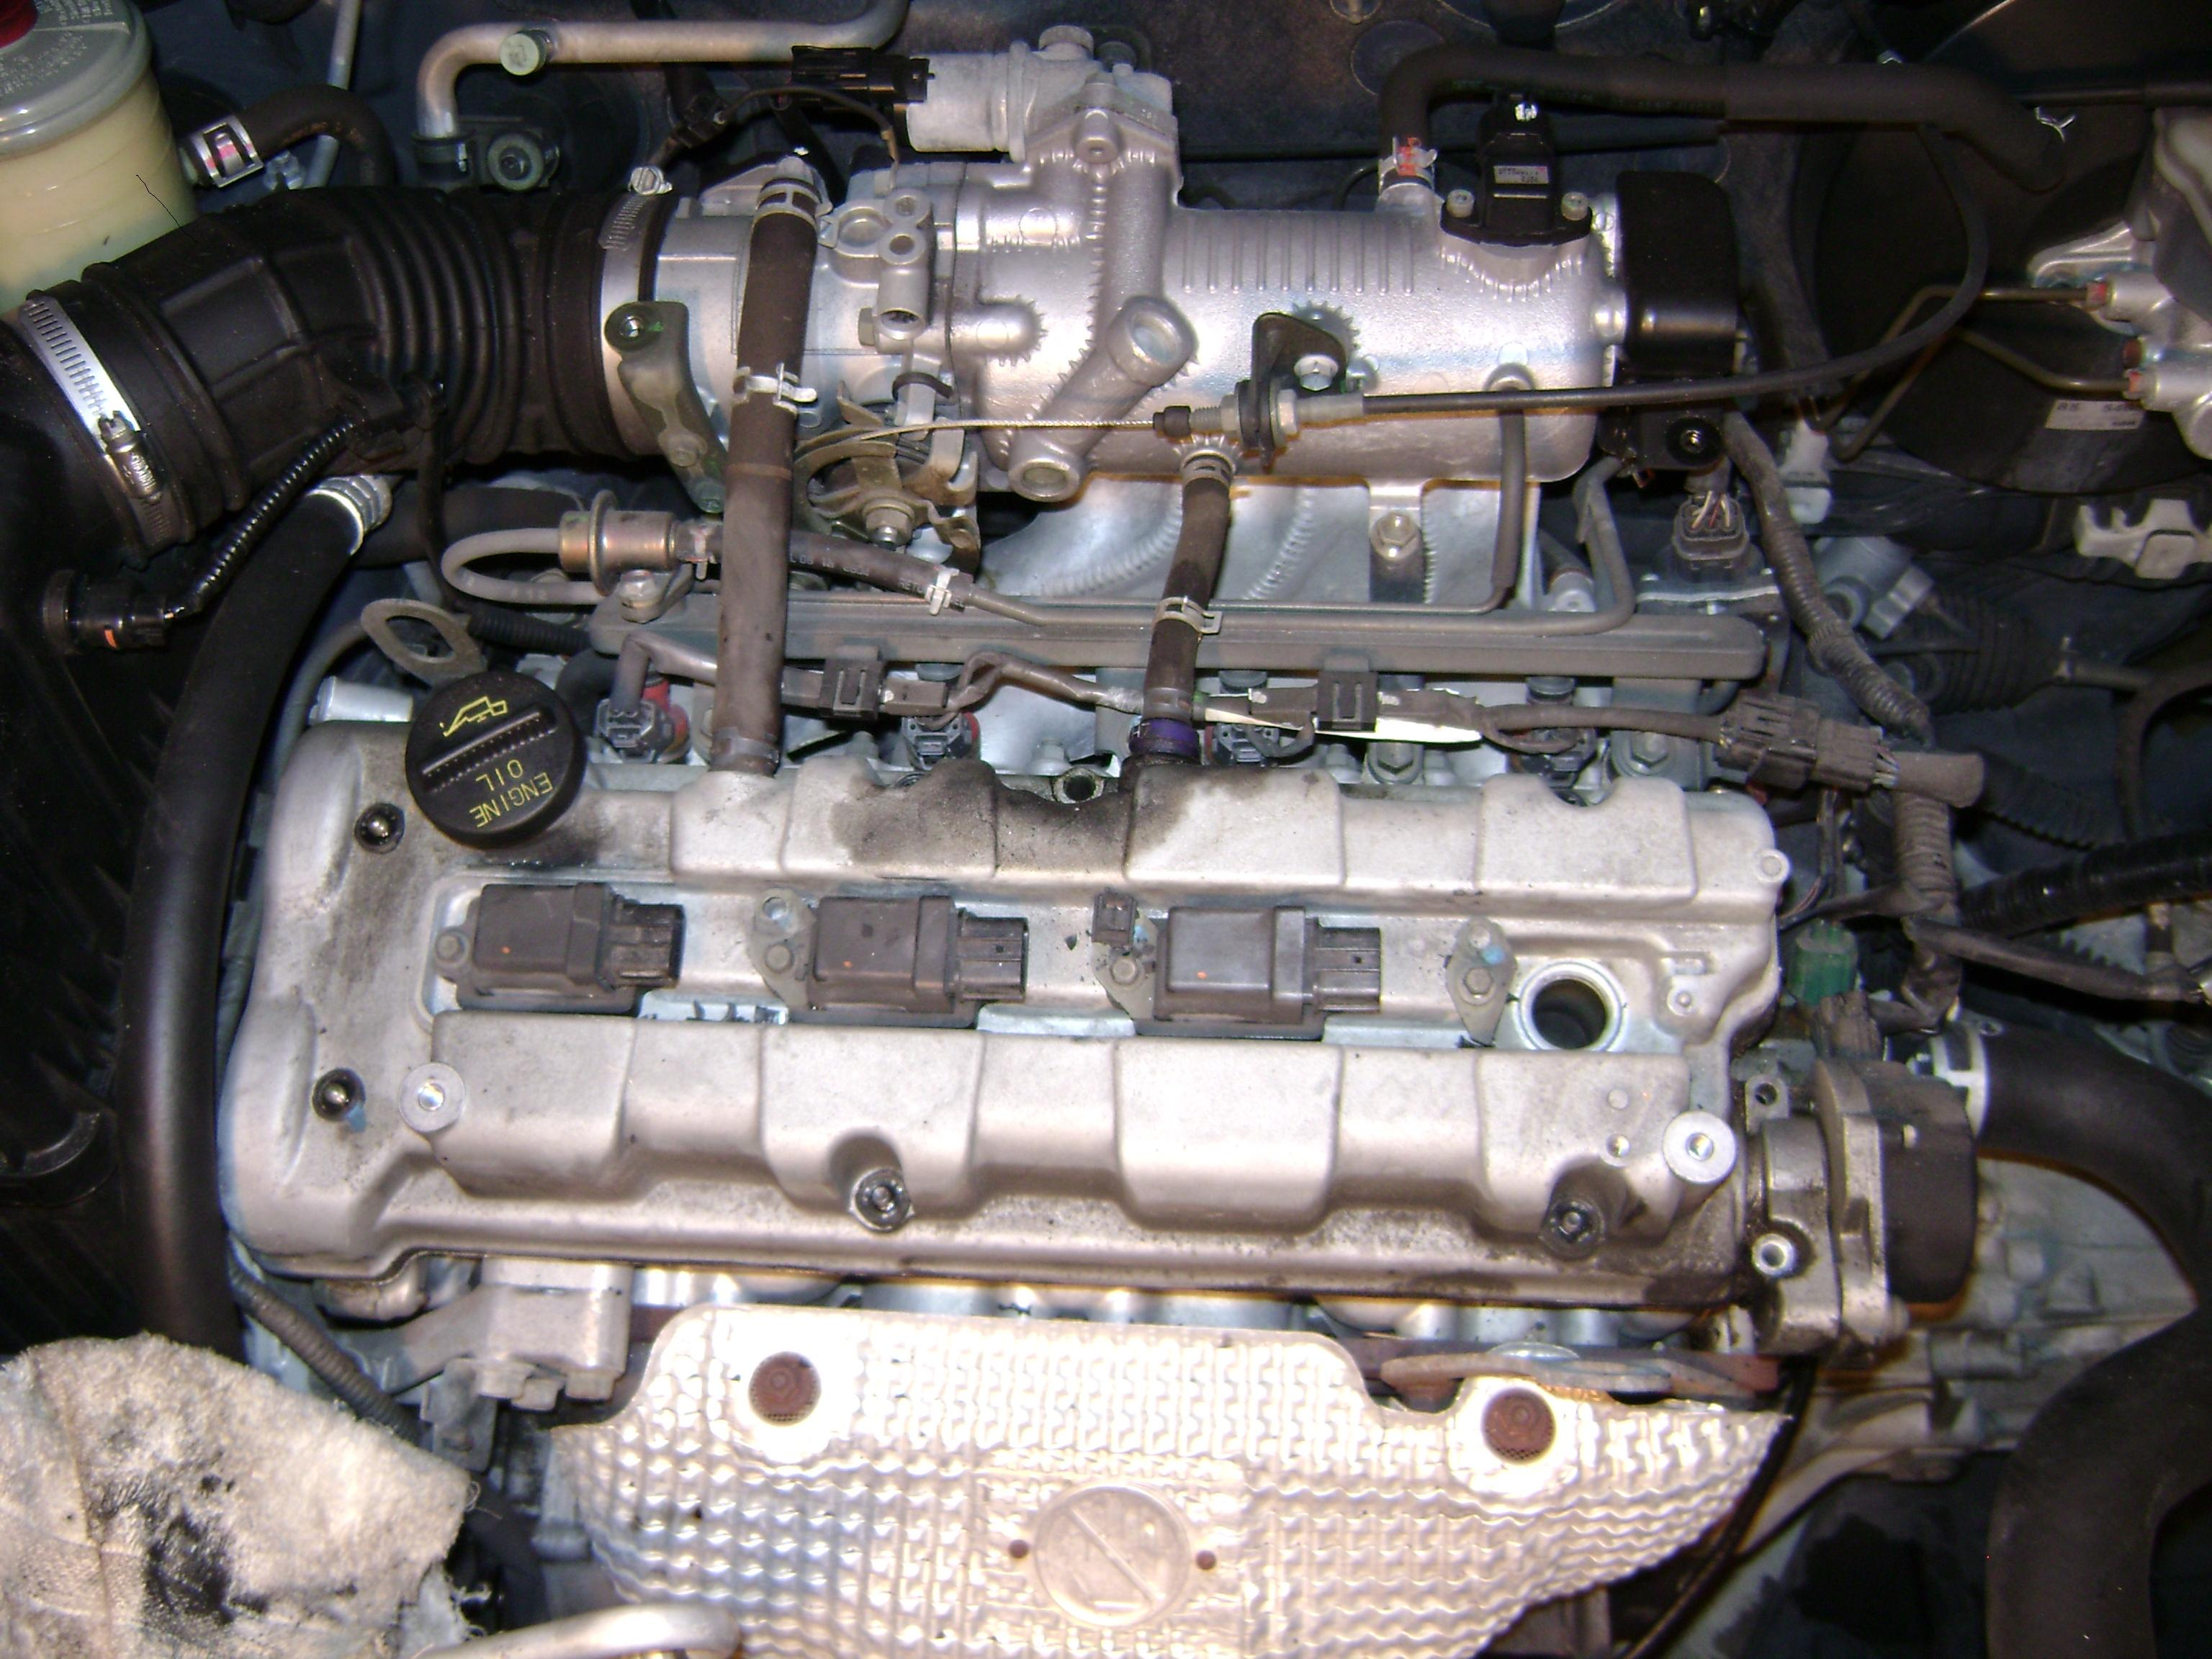 Service manual [How To Remove A Engine From A 2005 Scion ...